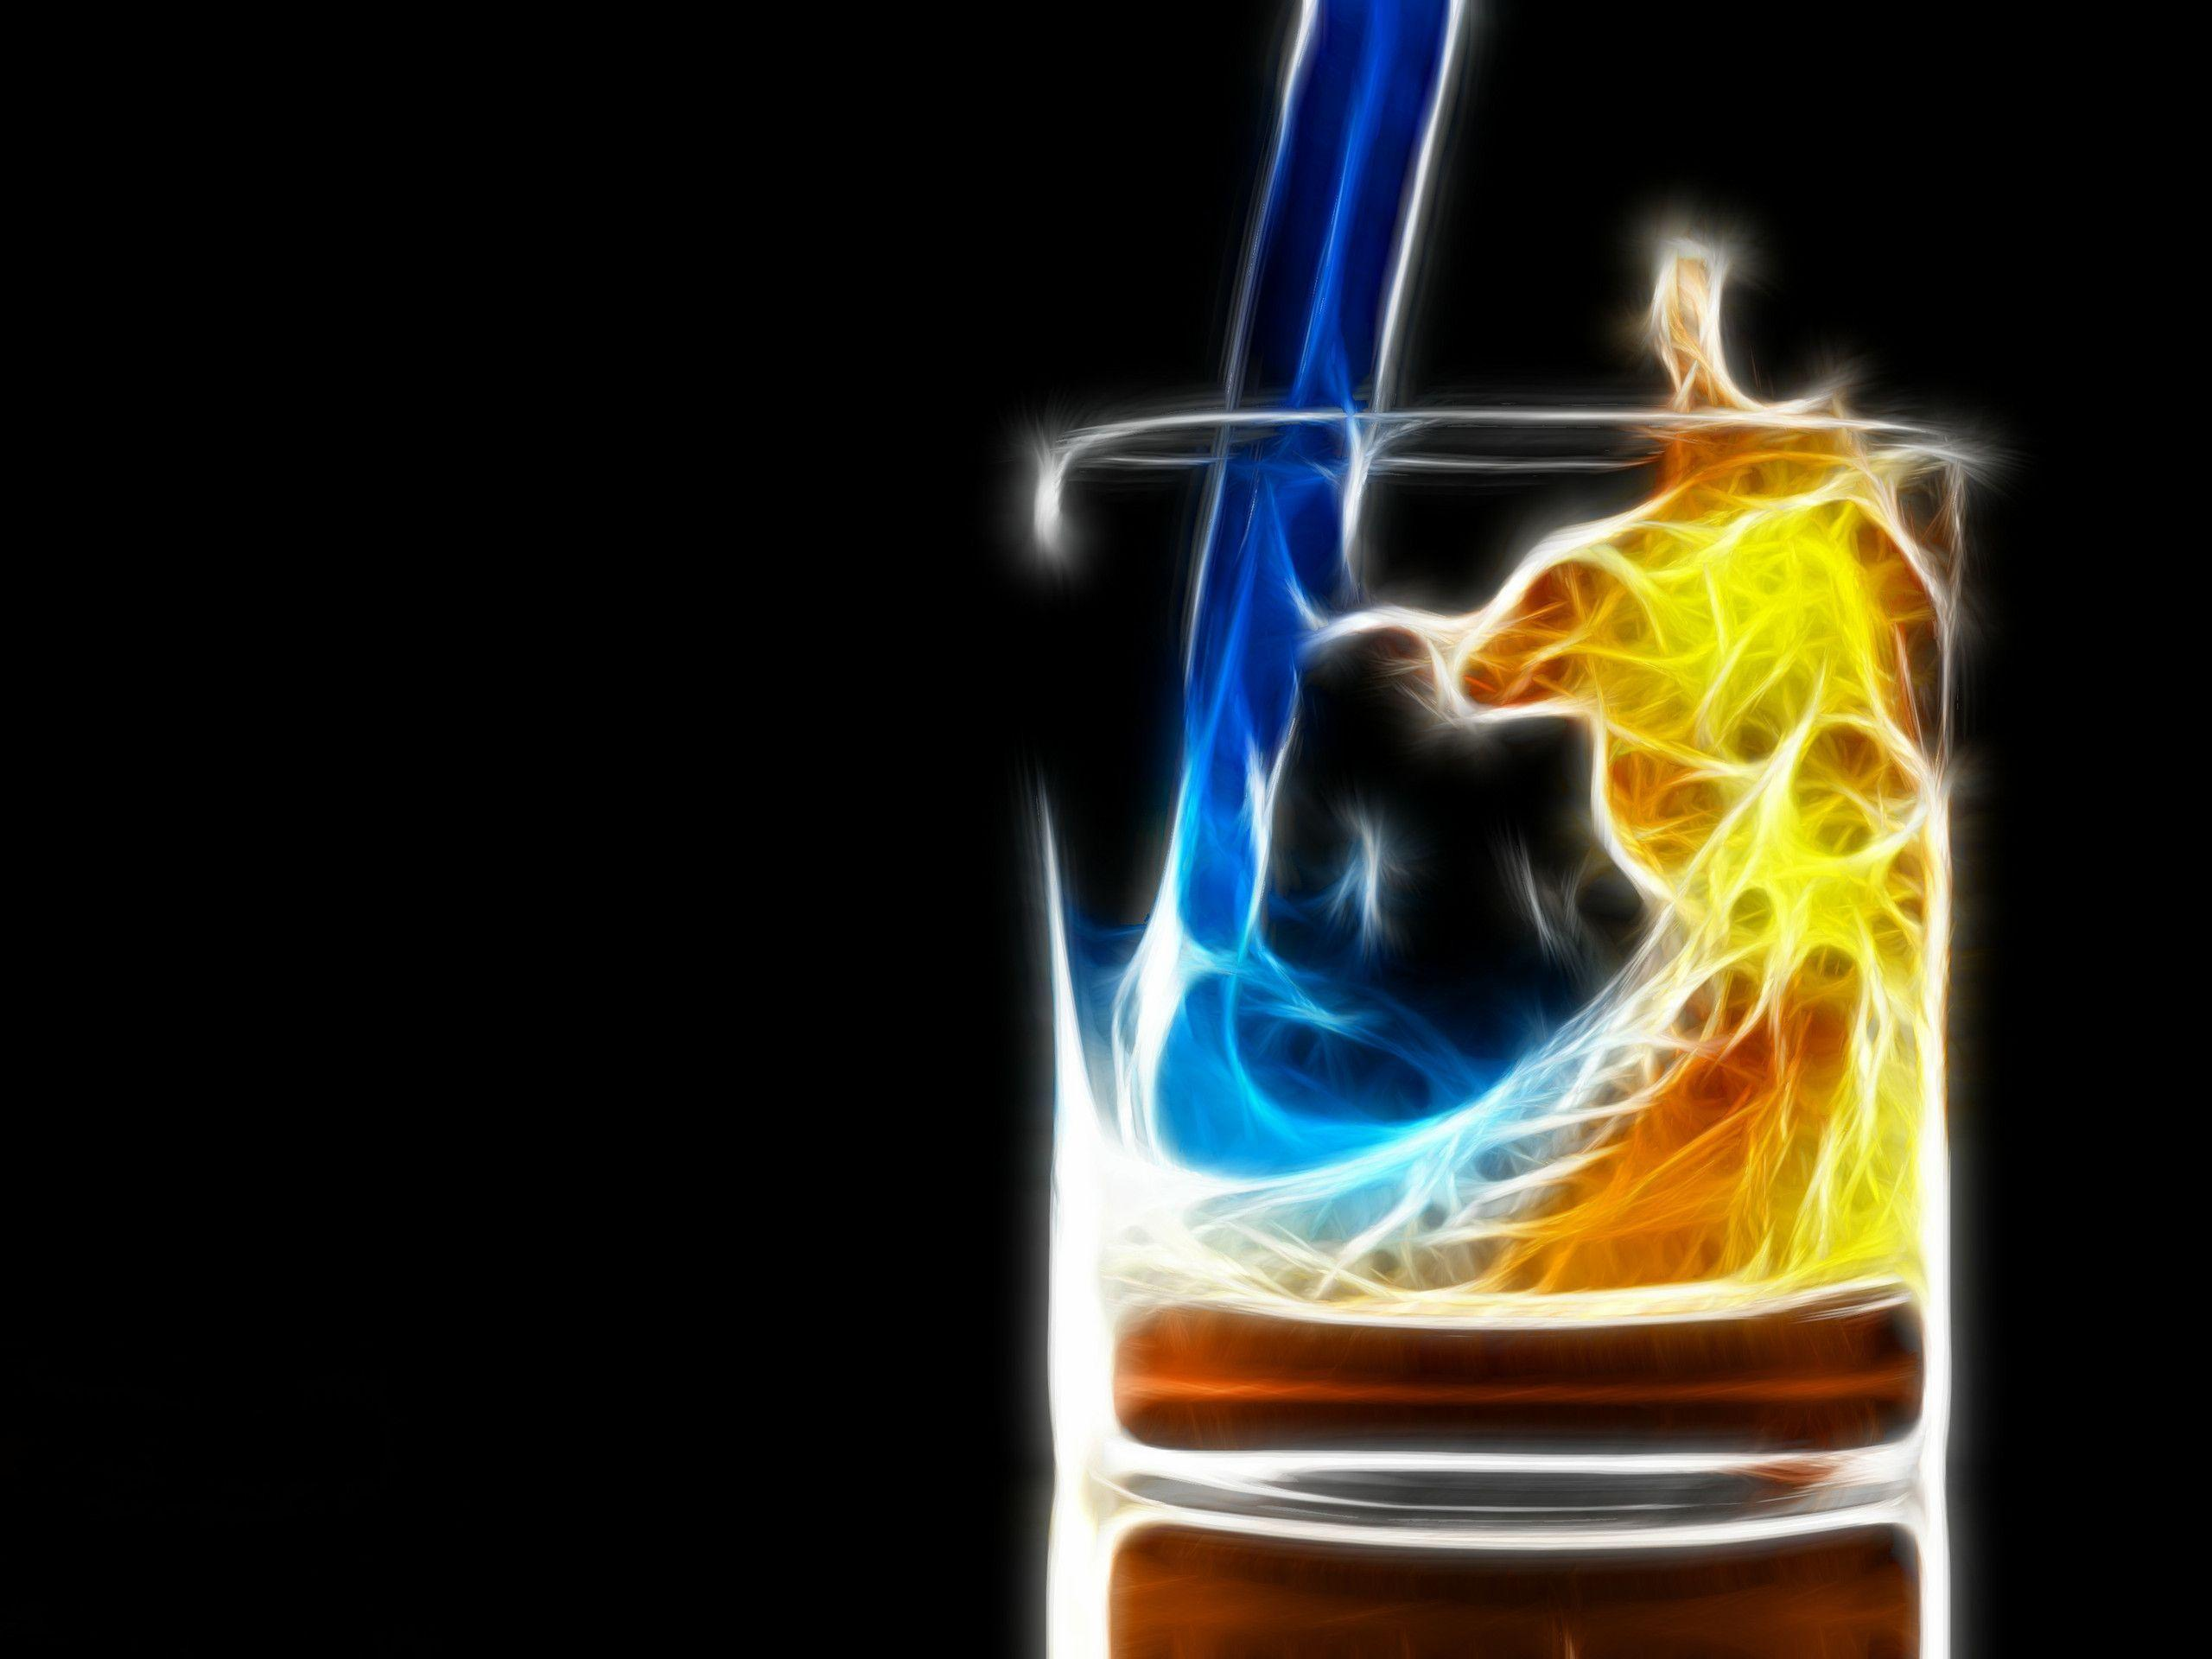 Fire Water. jpg : Desktop and mobile wallpapers : Wallippo